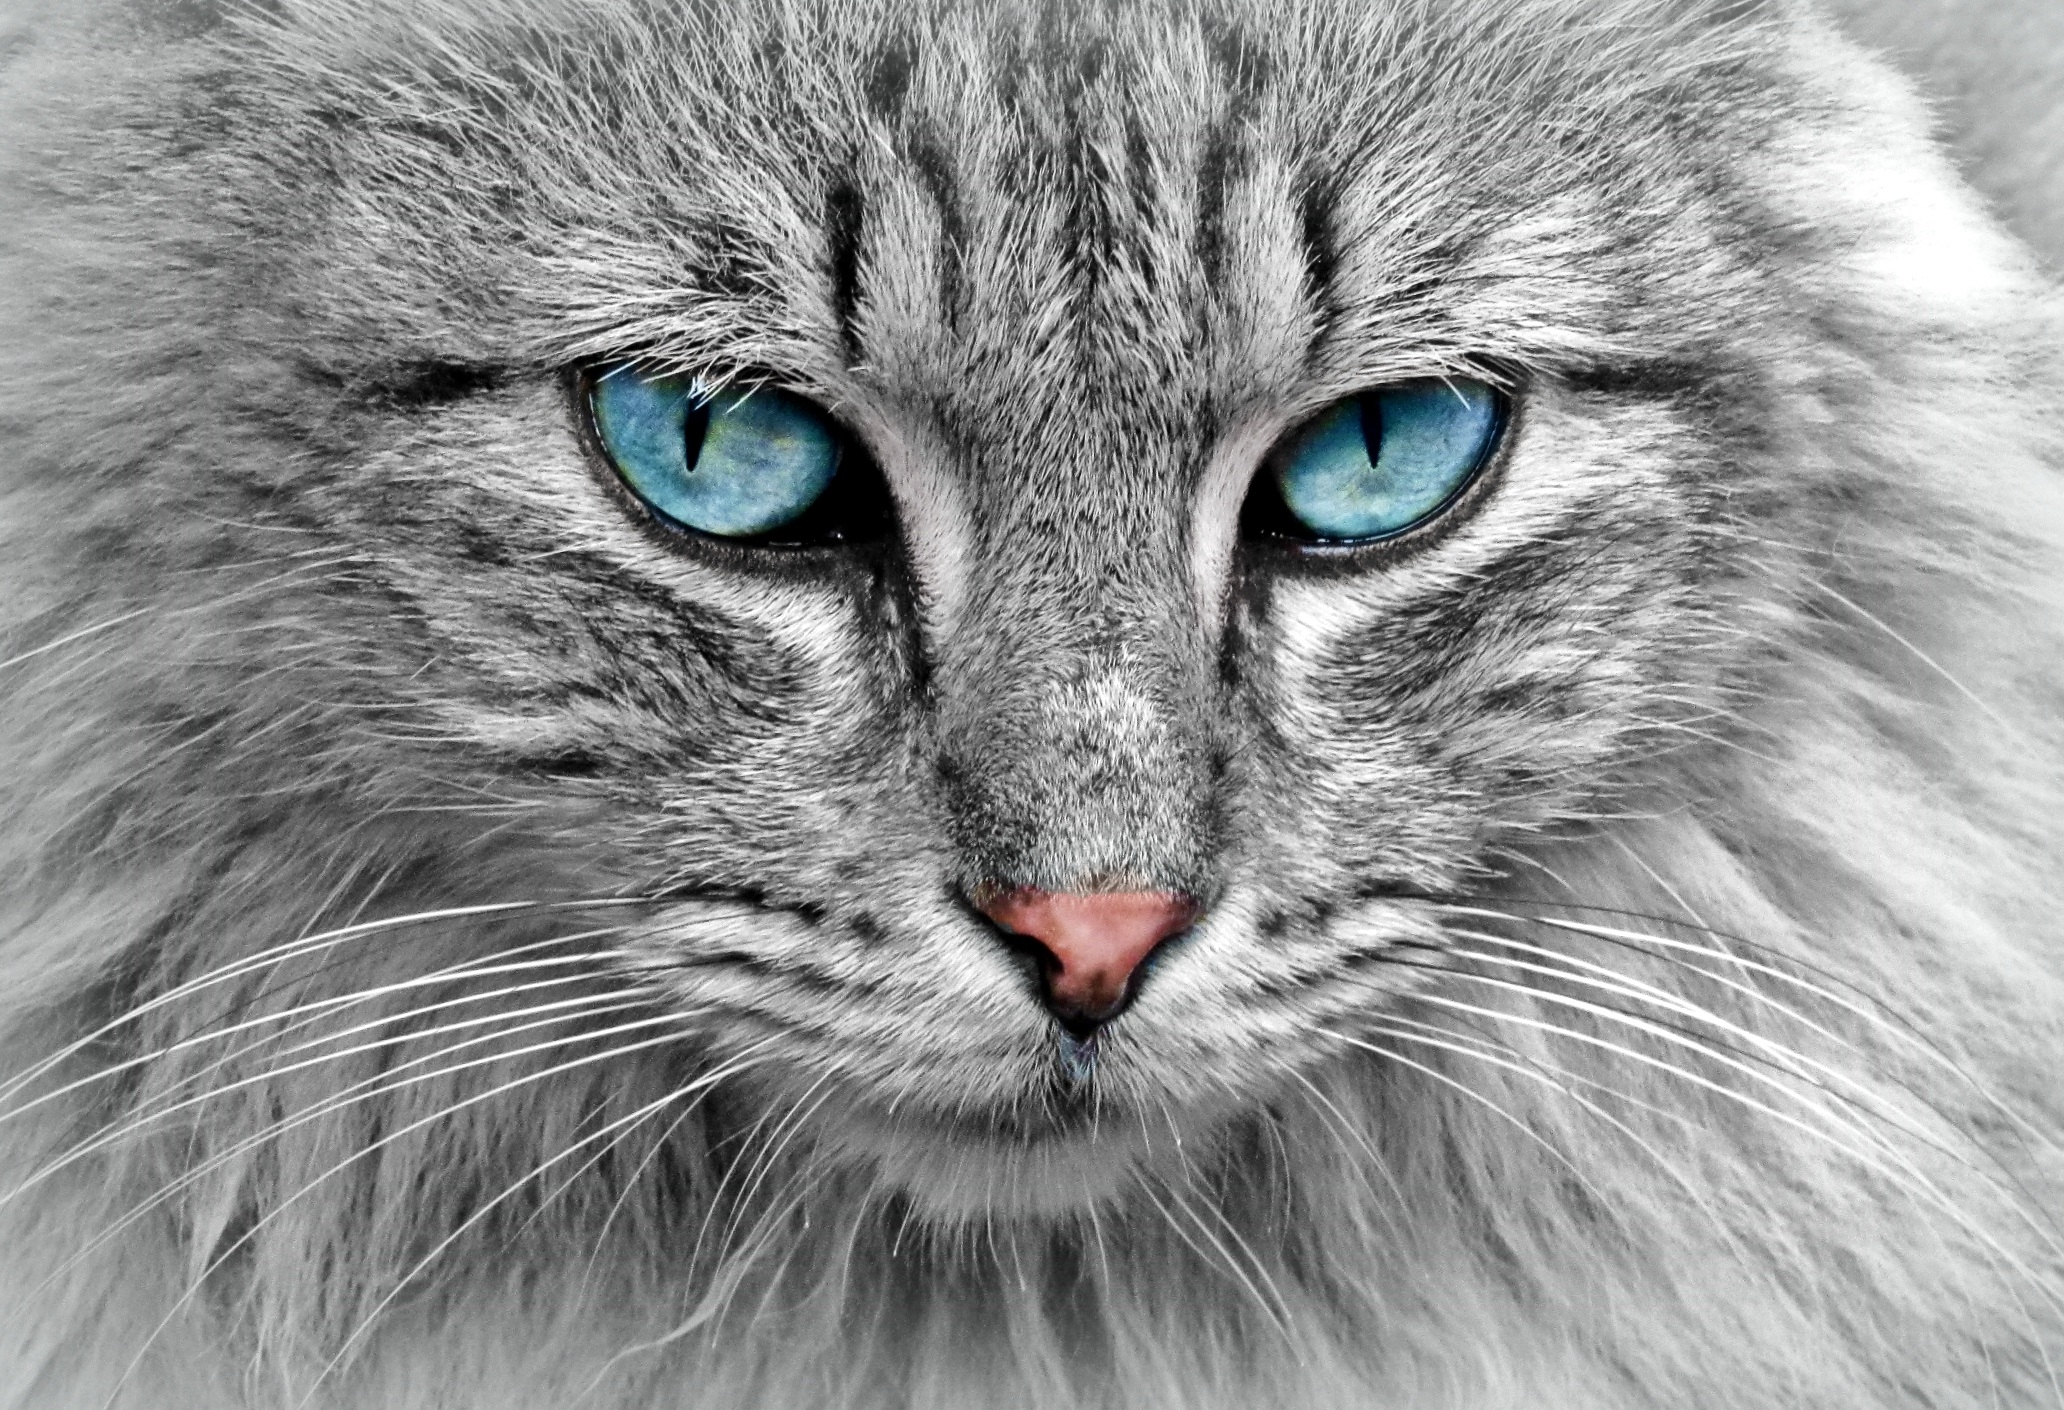 10 viking facts about the norwegian forest cats